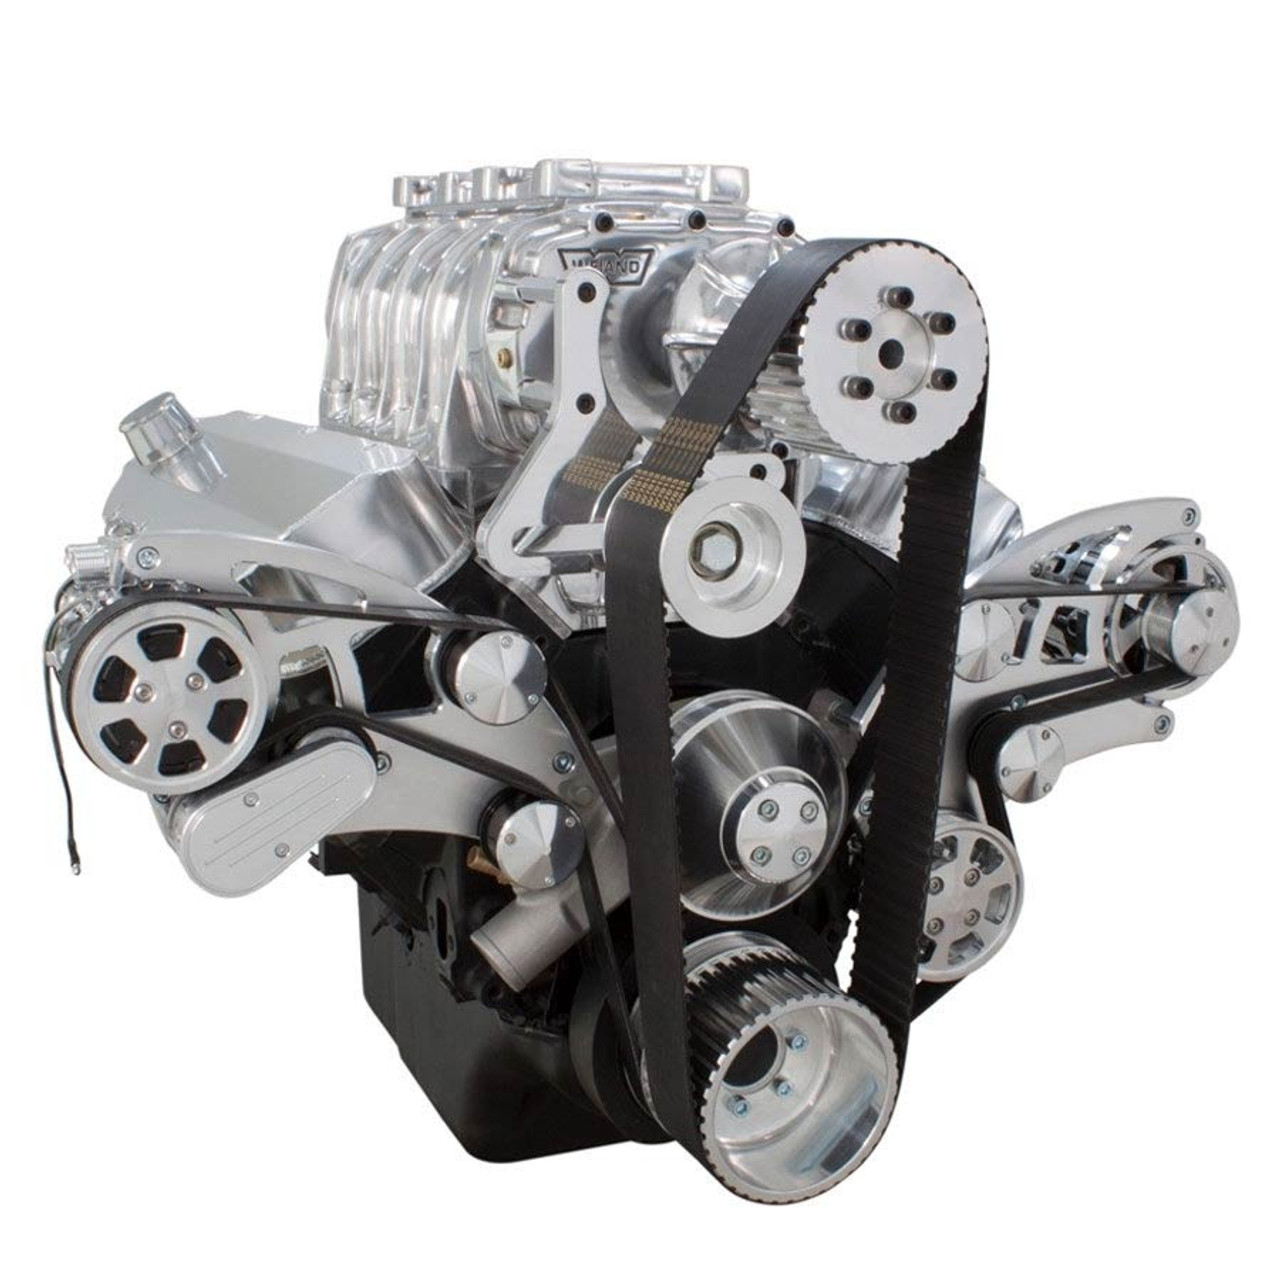 Serpentine System for Big Block Chevy Supercharger - AC, Power Steering,  Alternator & Root Style Blower - All Inclusive